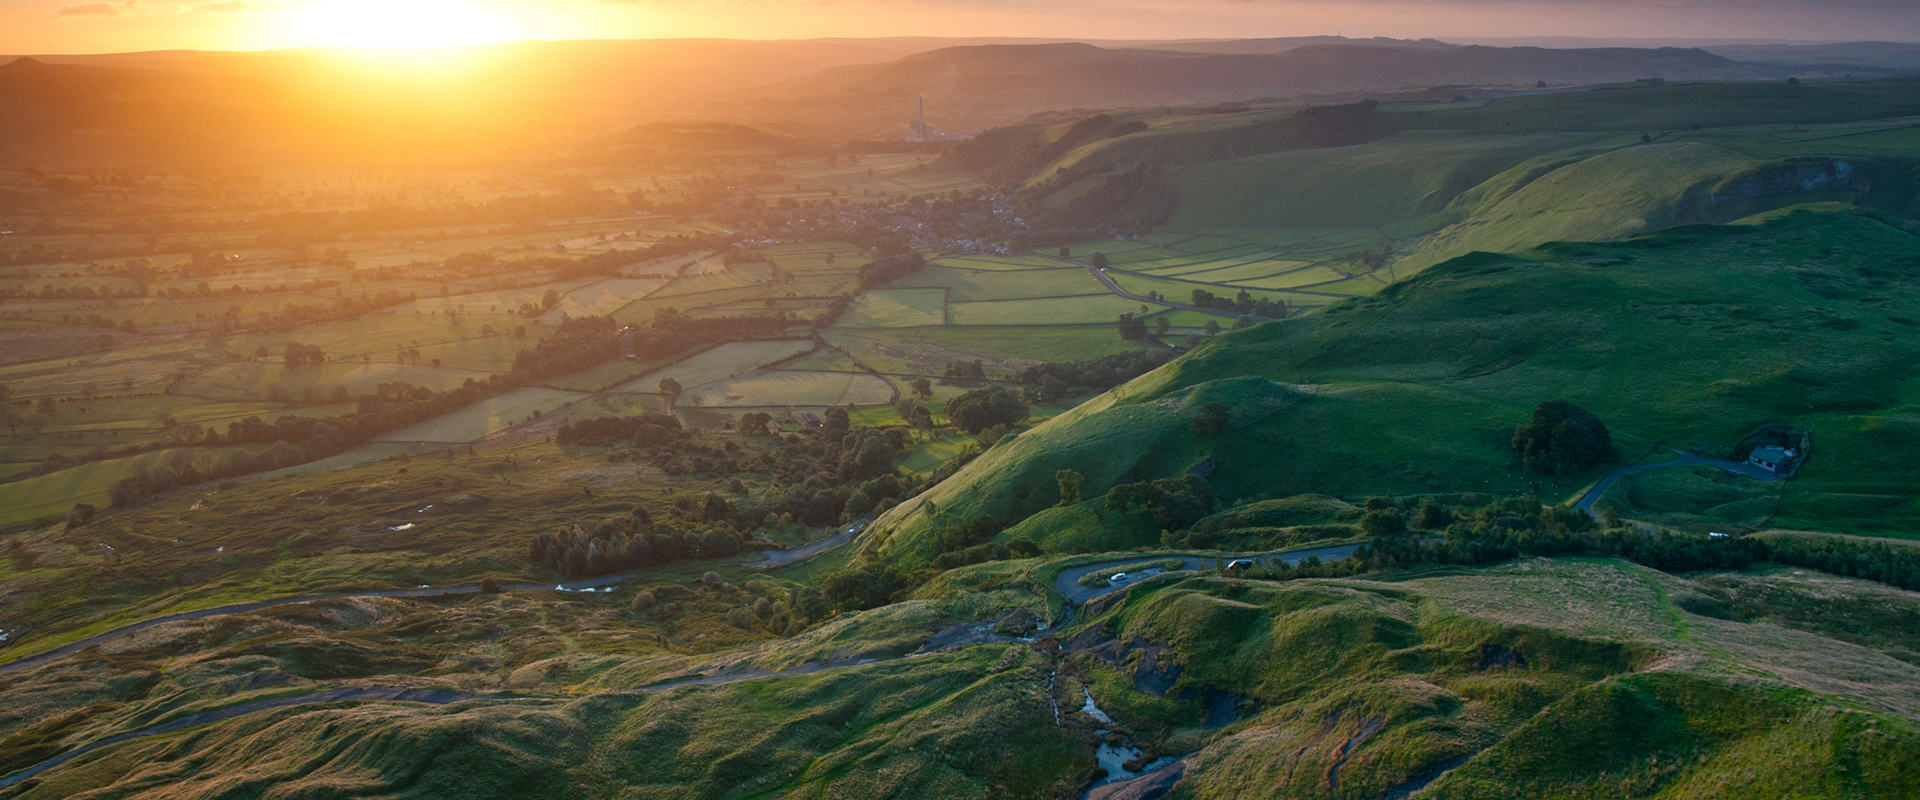 the-poachers-arms-header-image-peak-district